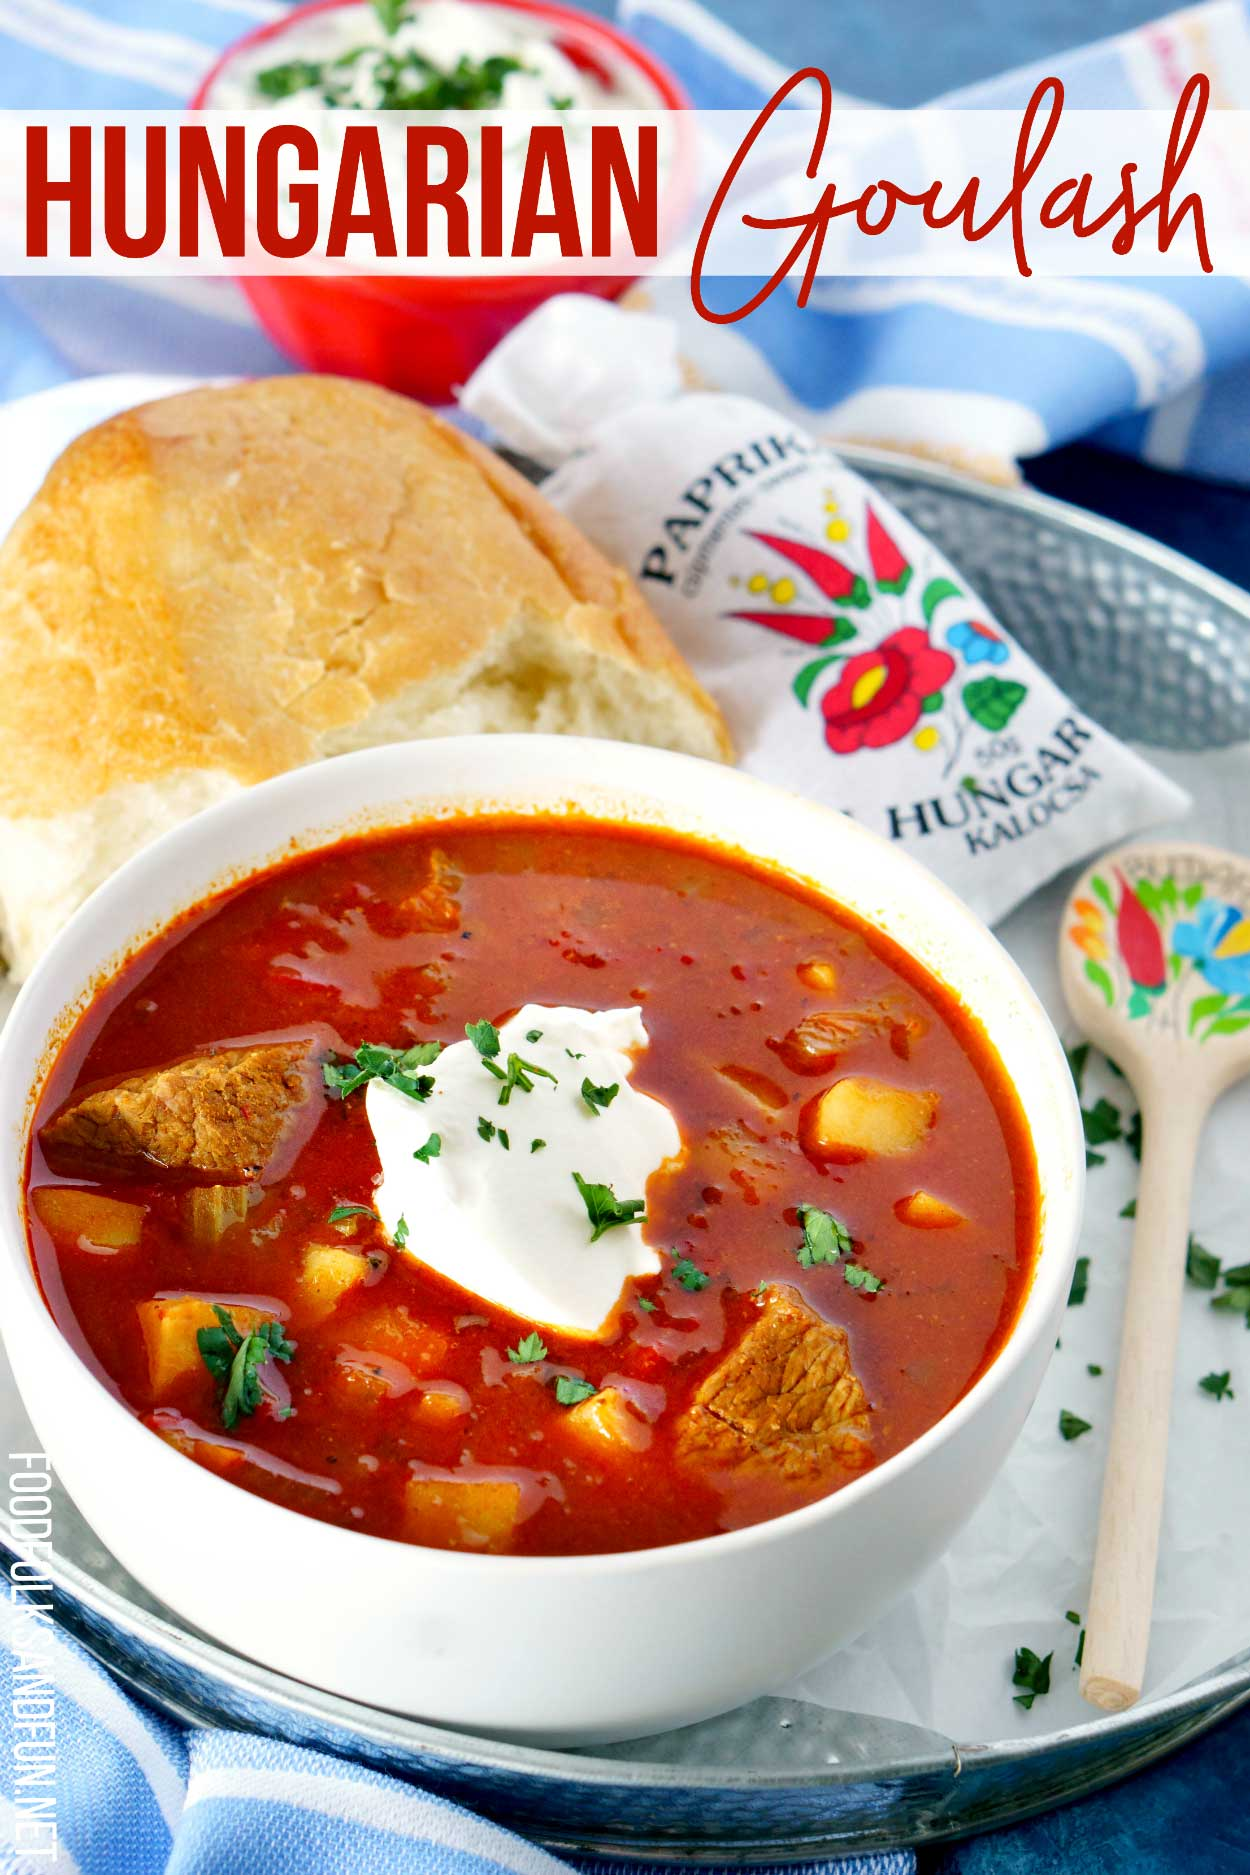 Goulash is the ultimate Hungarian Comfort food. It's a hearty beef stew that's so flavorful thanks to sweet Hungarian paprika, peppers, onions, garlic, tomato paste, and caraway seeds. It's a dish that can be enjoyed year round. via @foodfolksandfun